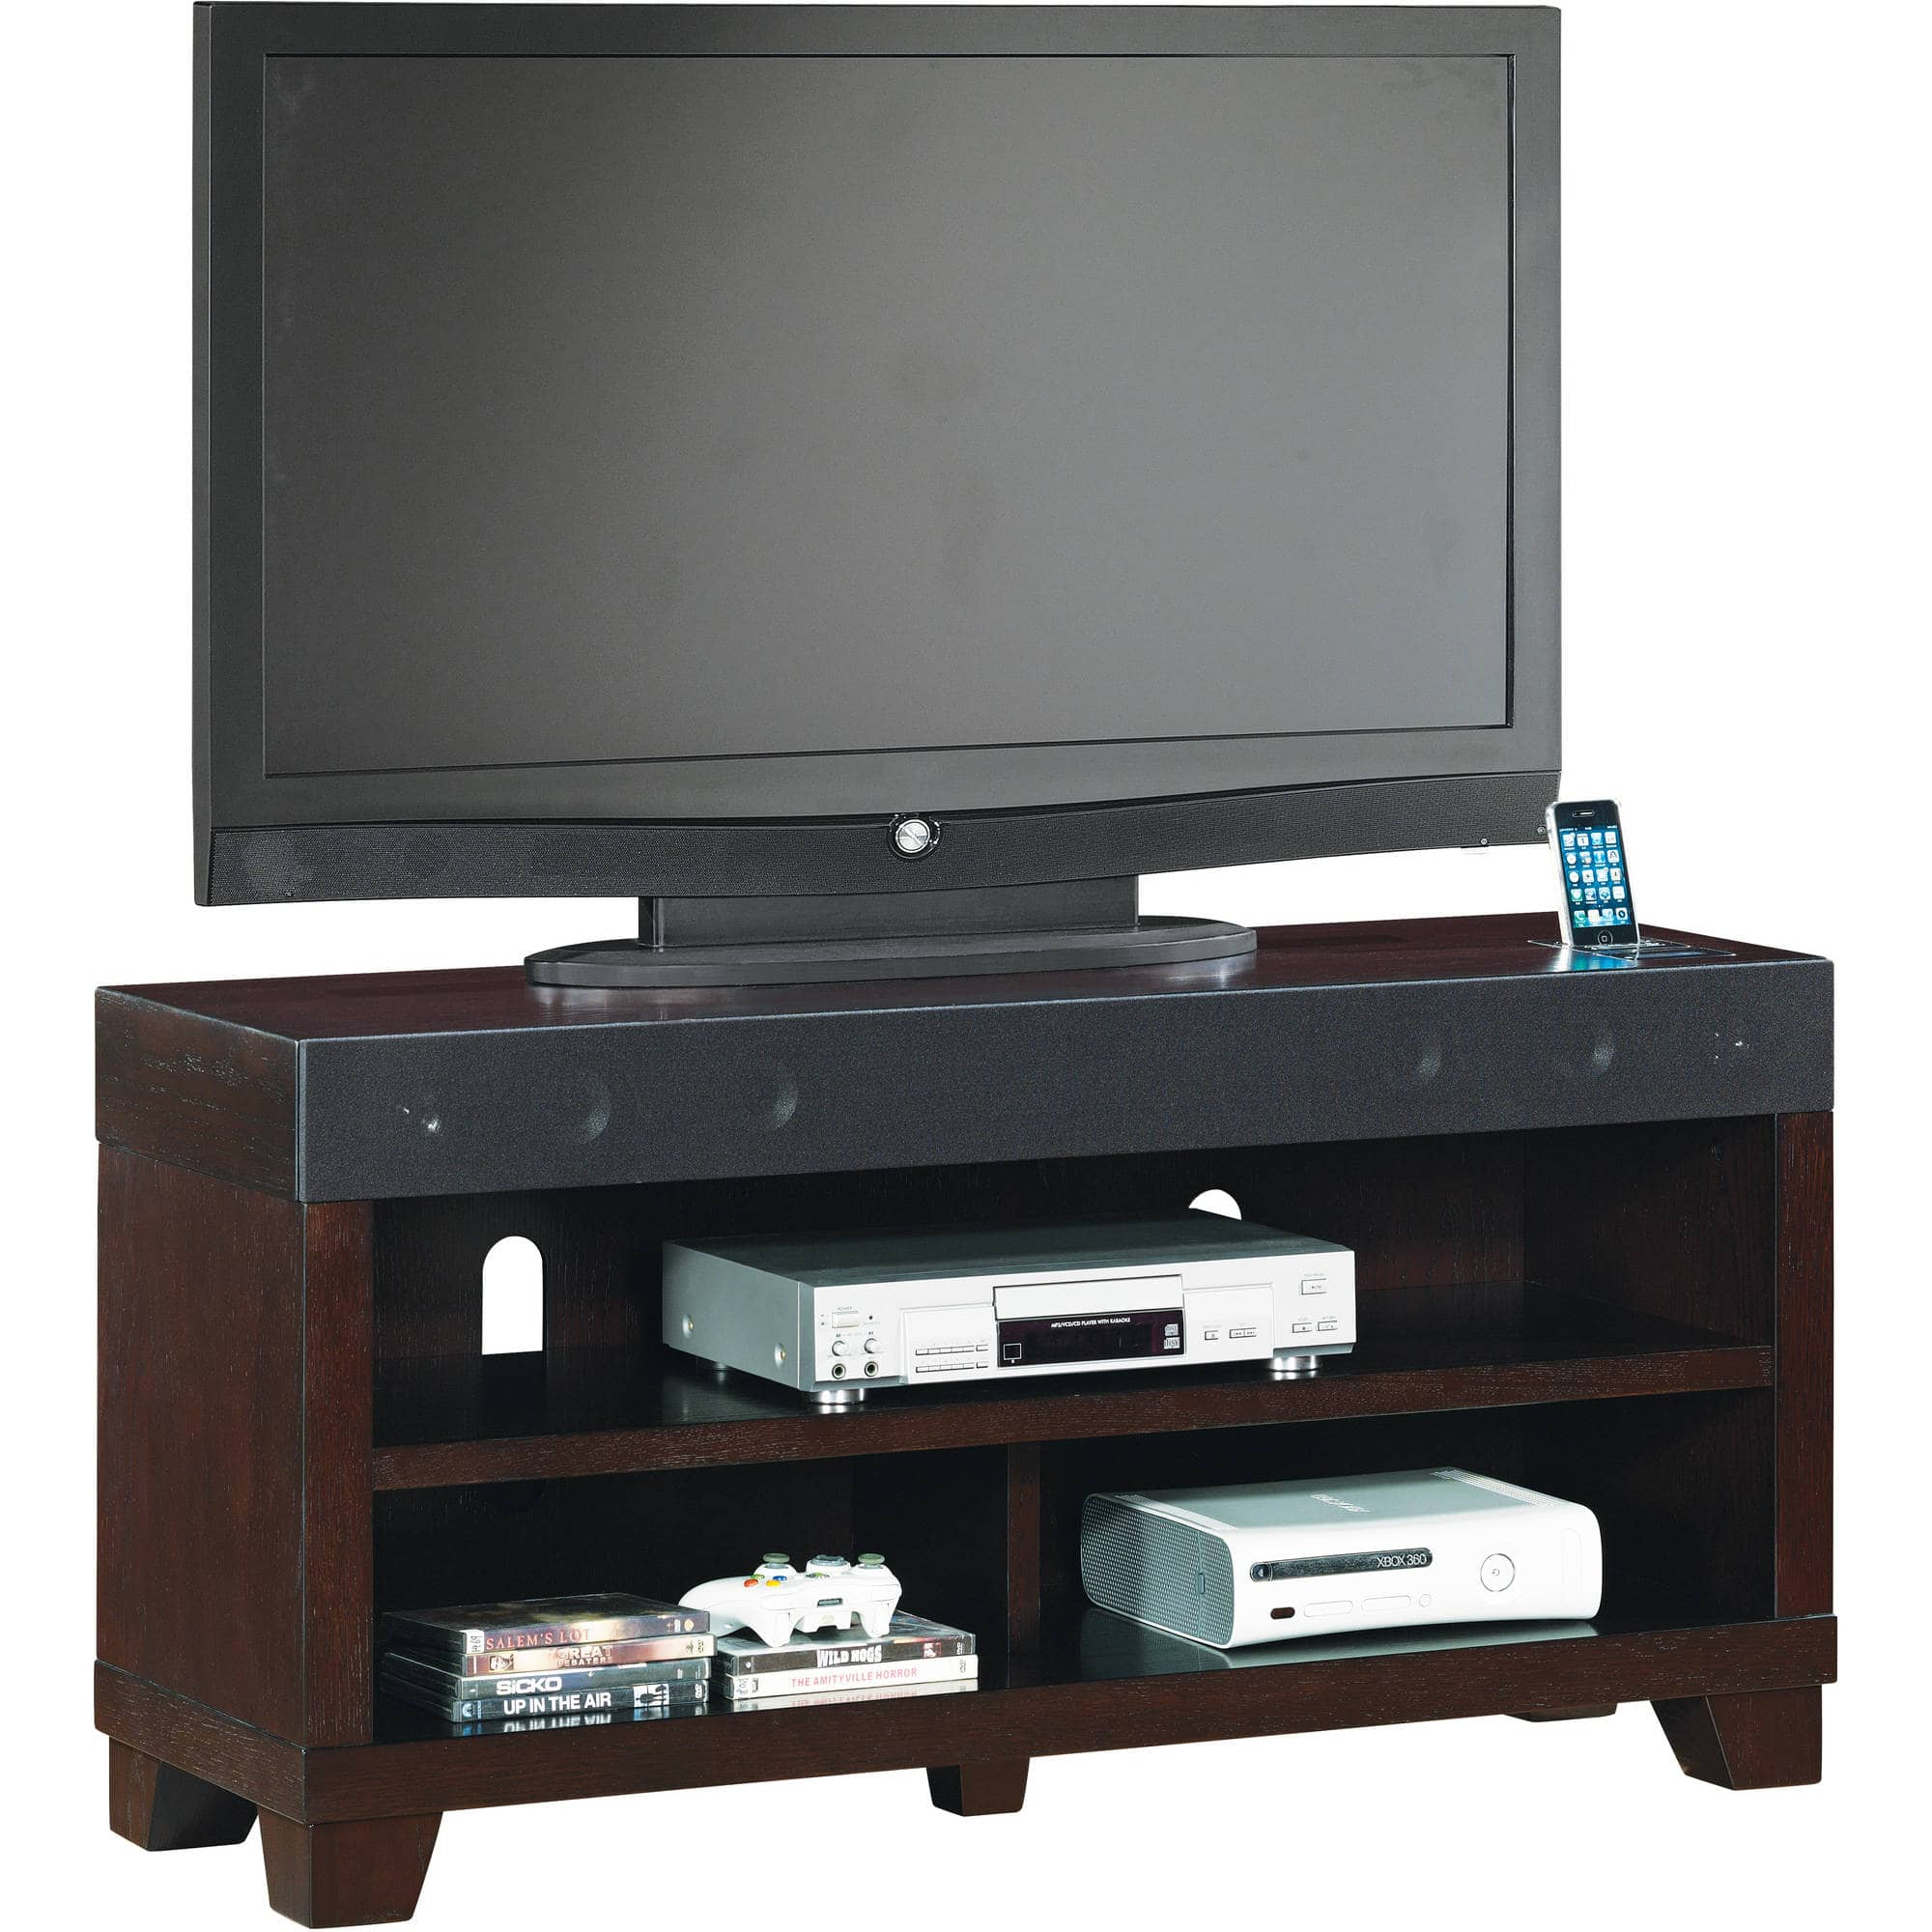 Gotham Tv Stand For Tvs Up To 70 Silver Black With Built In